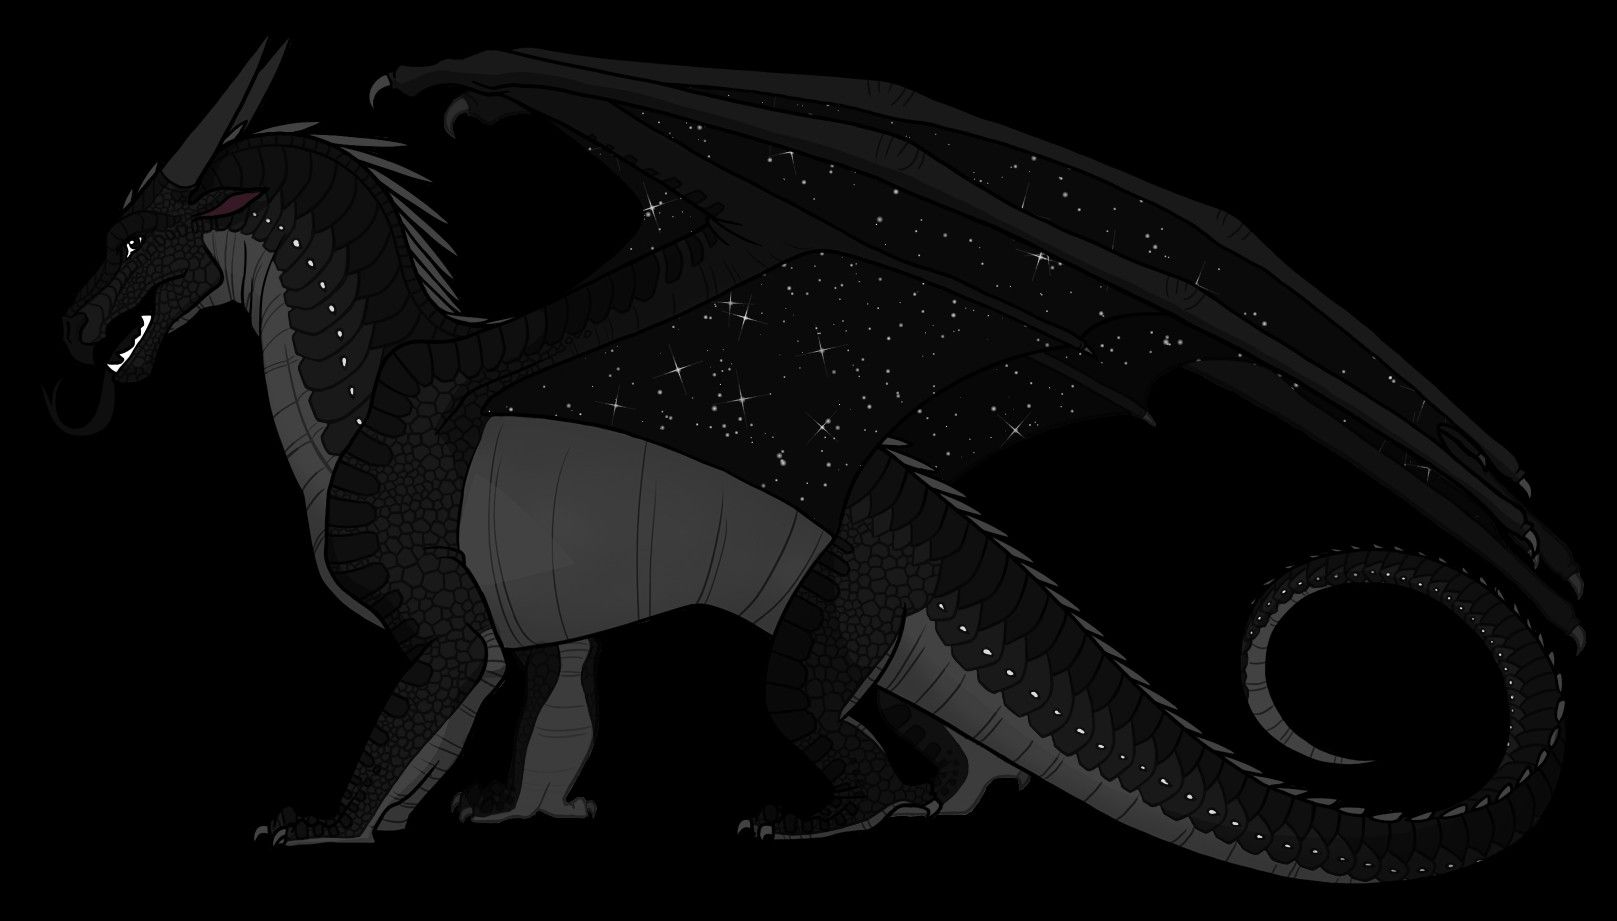 wings of fire nightwing nightwing armour wing of fire roblox wiki fandom fire of nightwing wings